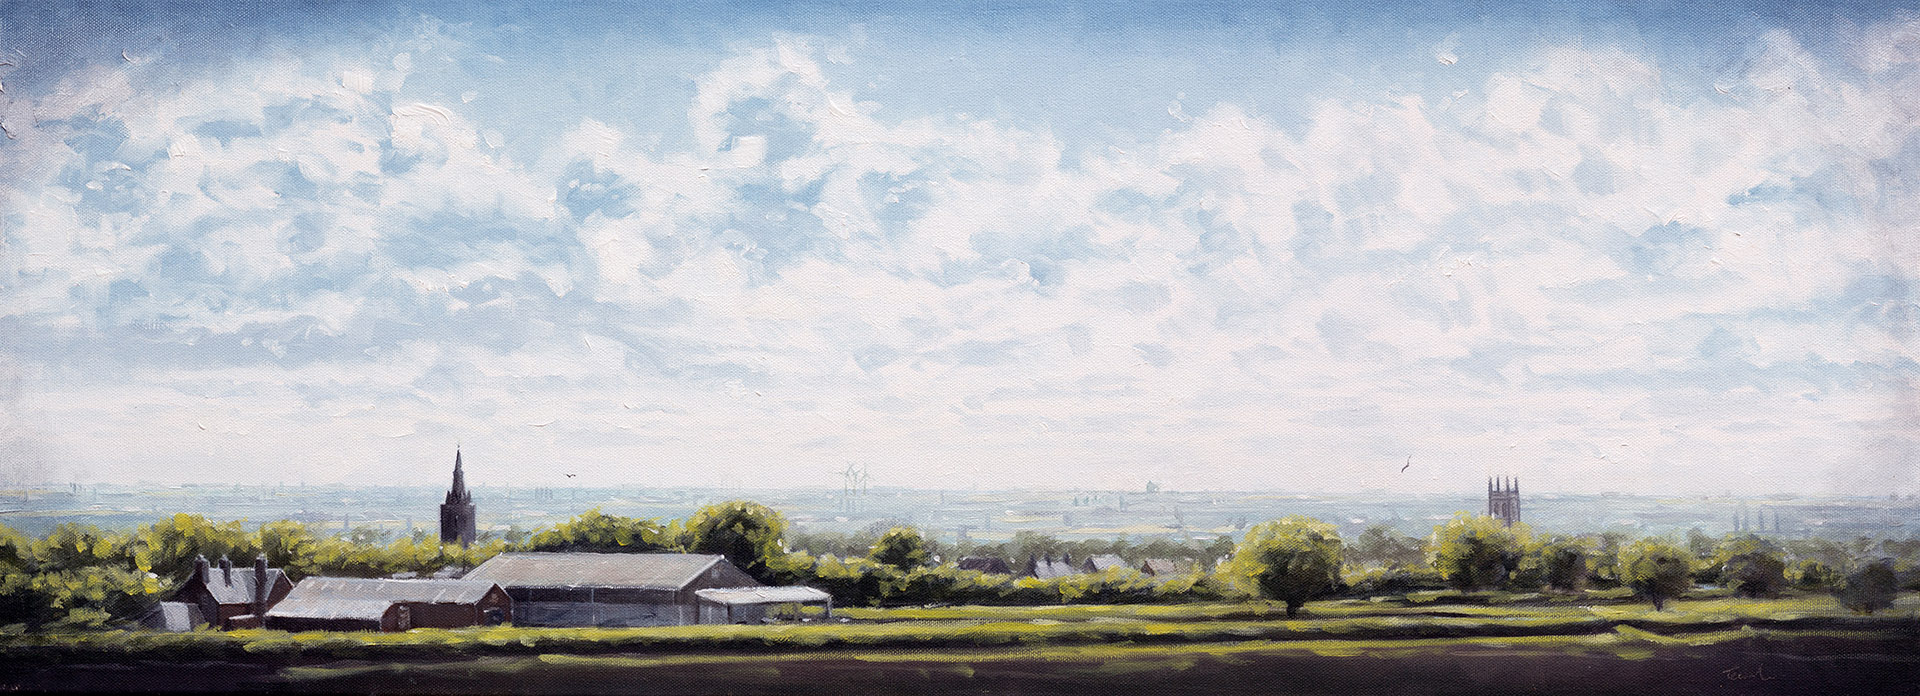 From Haconby over Morton to Crowland - Nick Tearle Fenland Artist